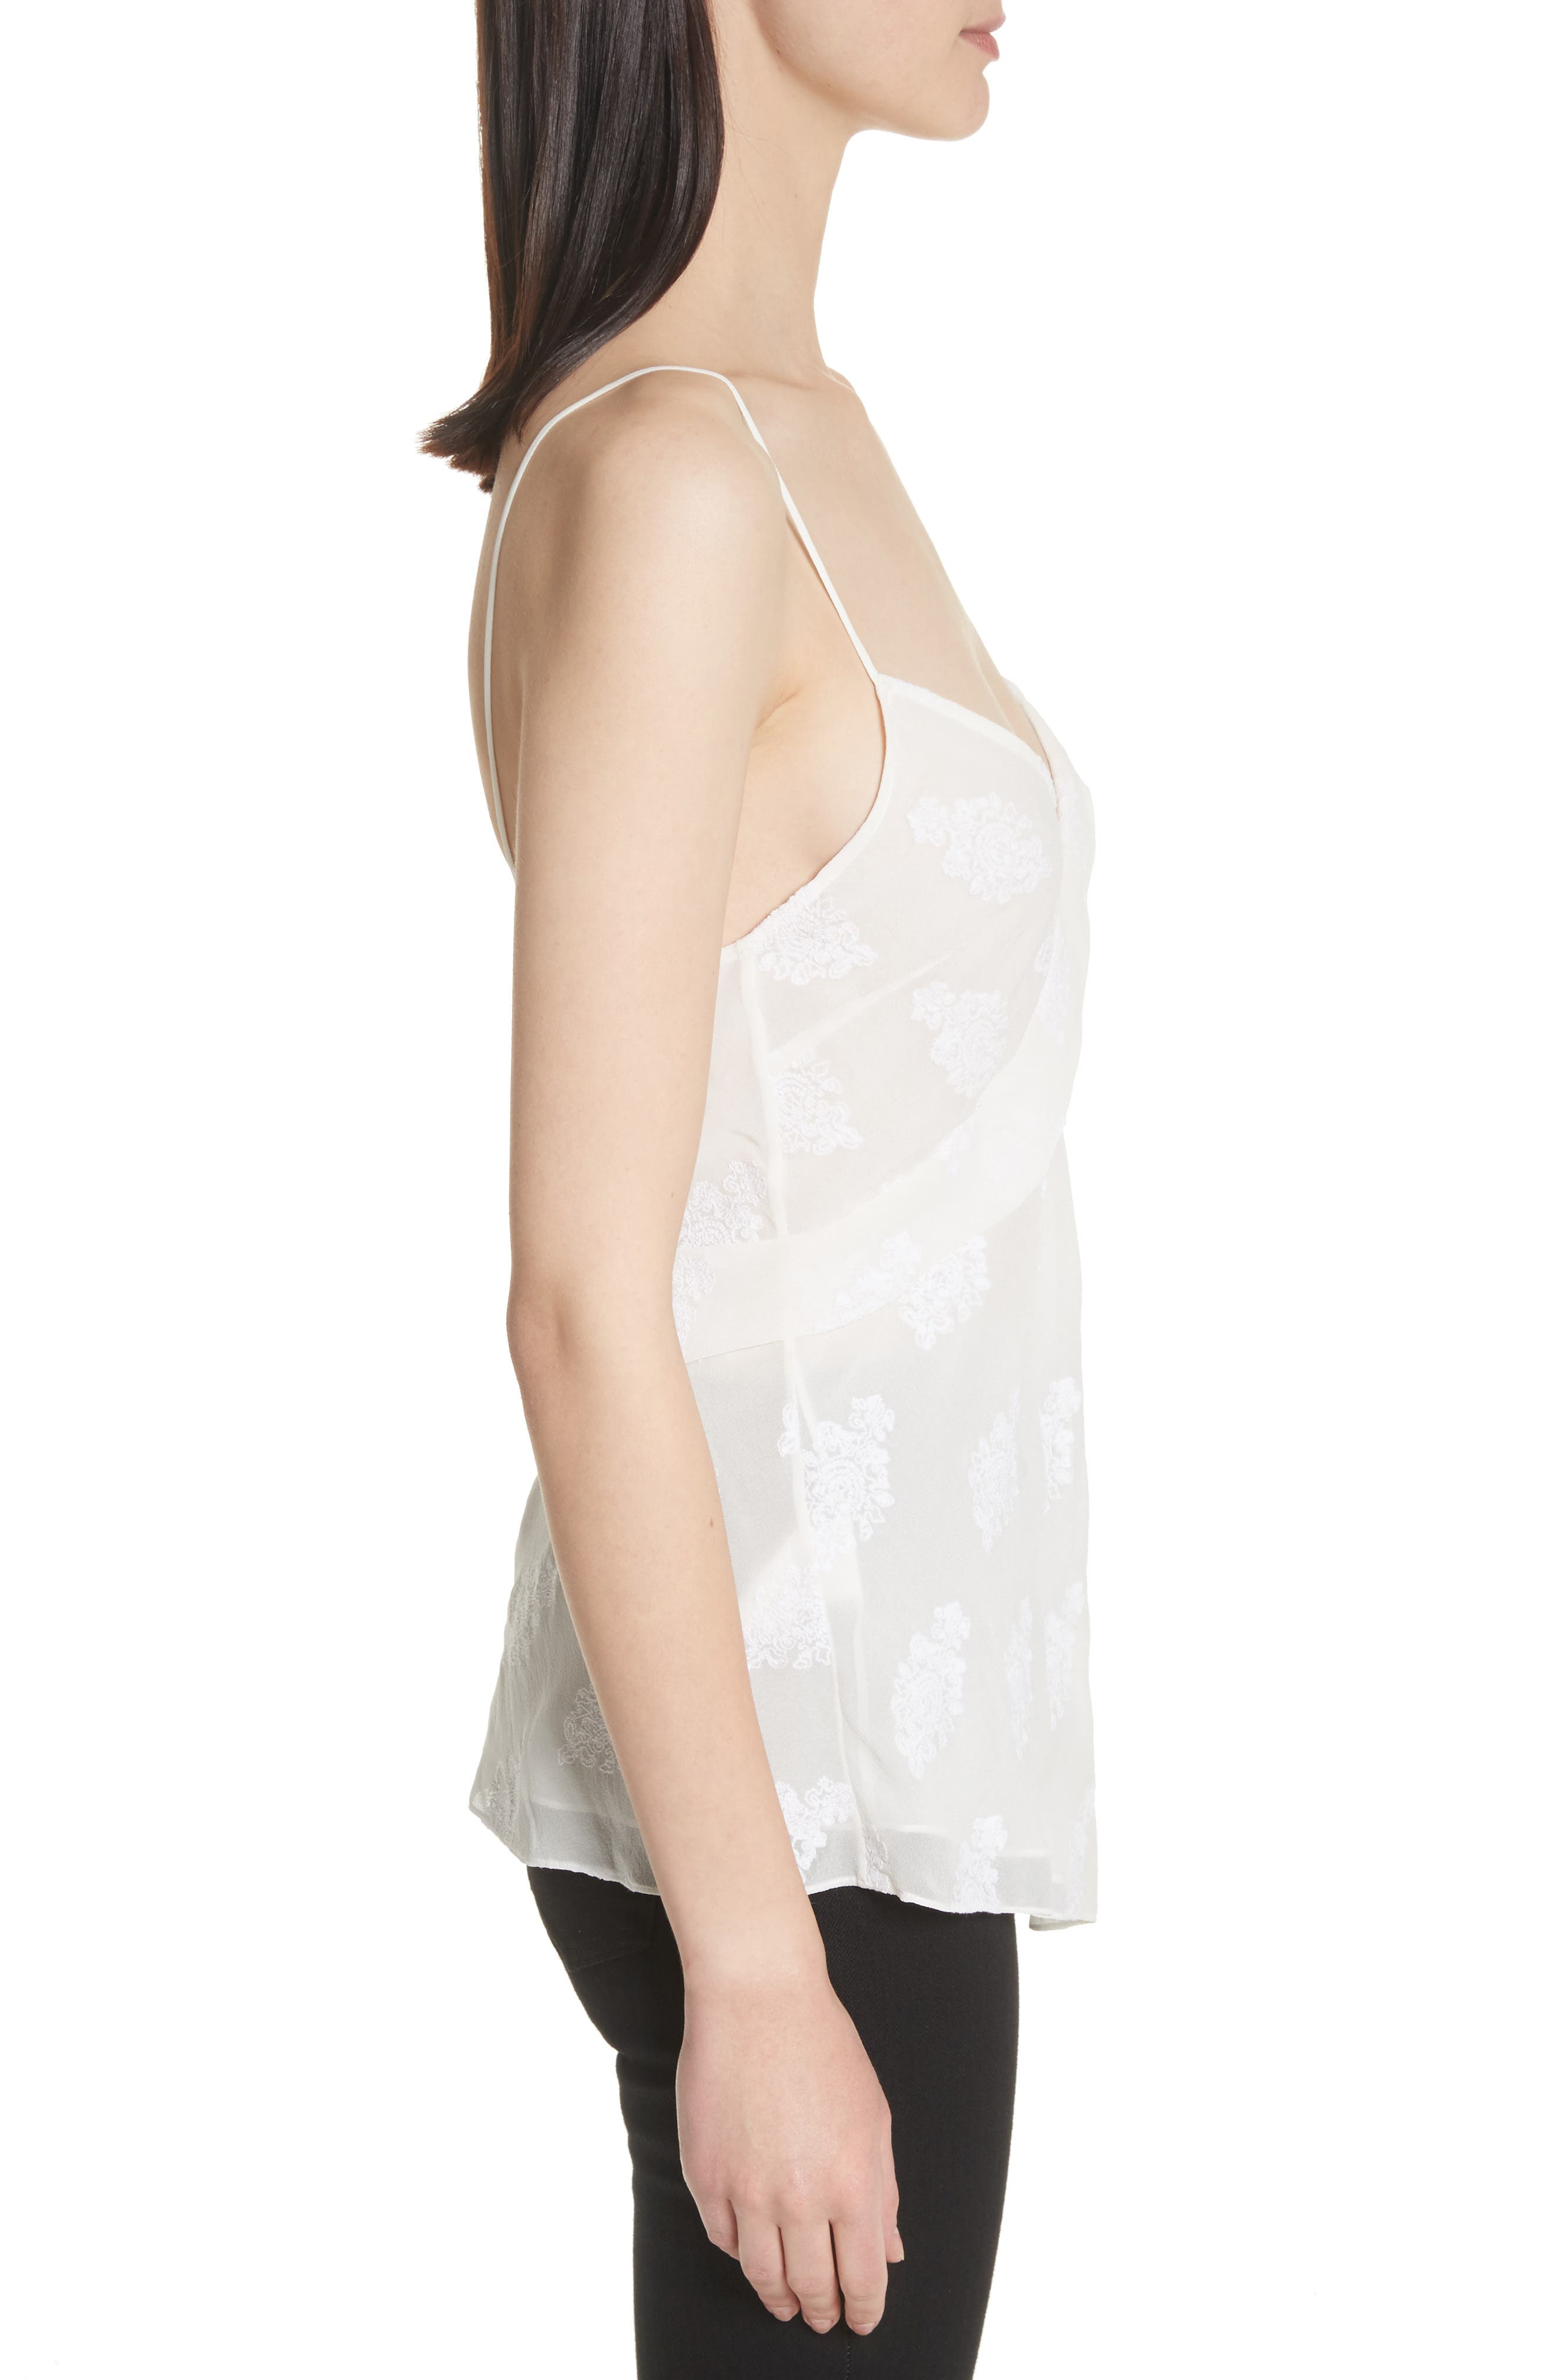 C2.Co Crossover Camisole,                             Alternate thumbnail 3, color,                             White/ White